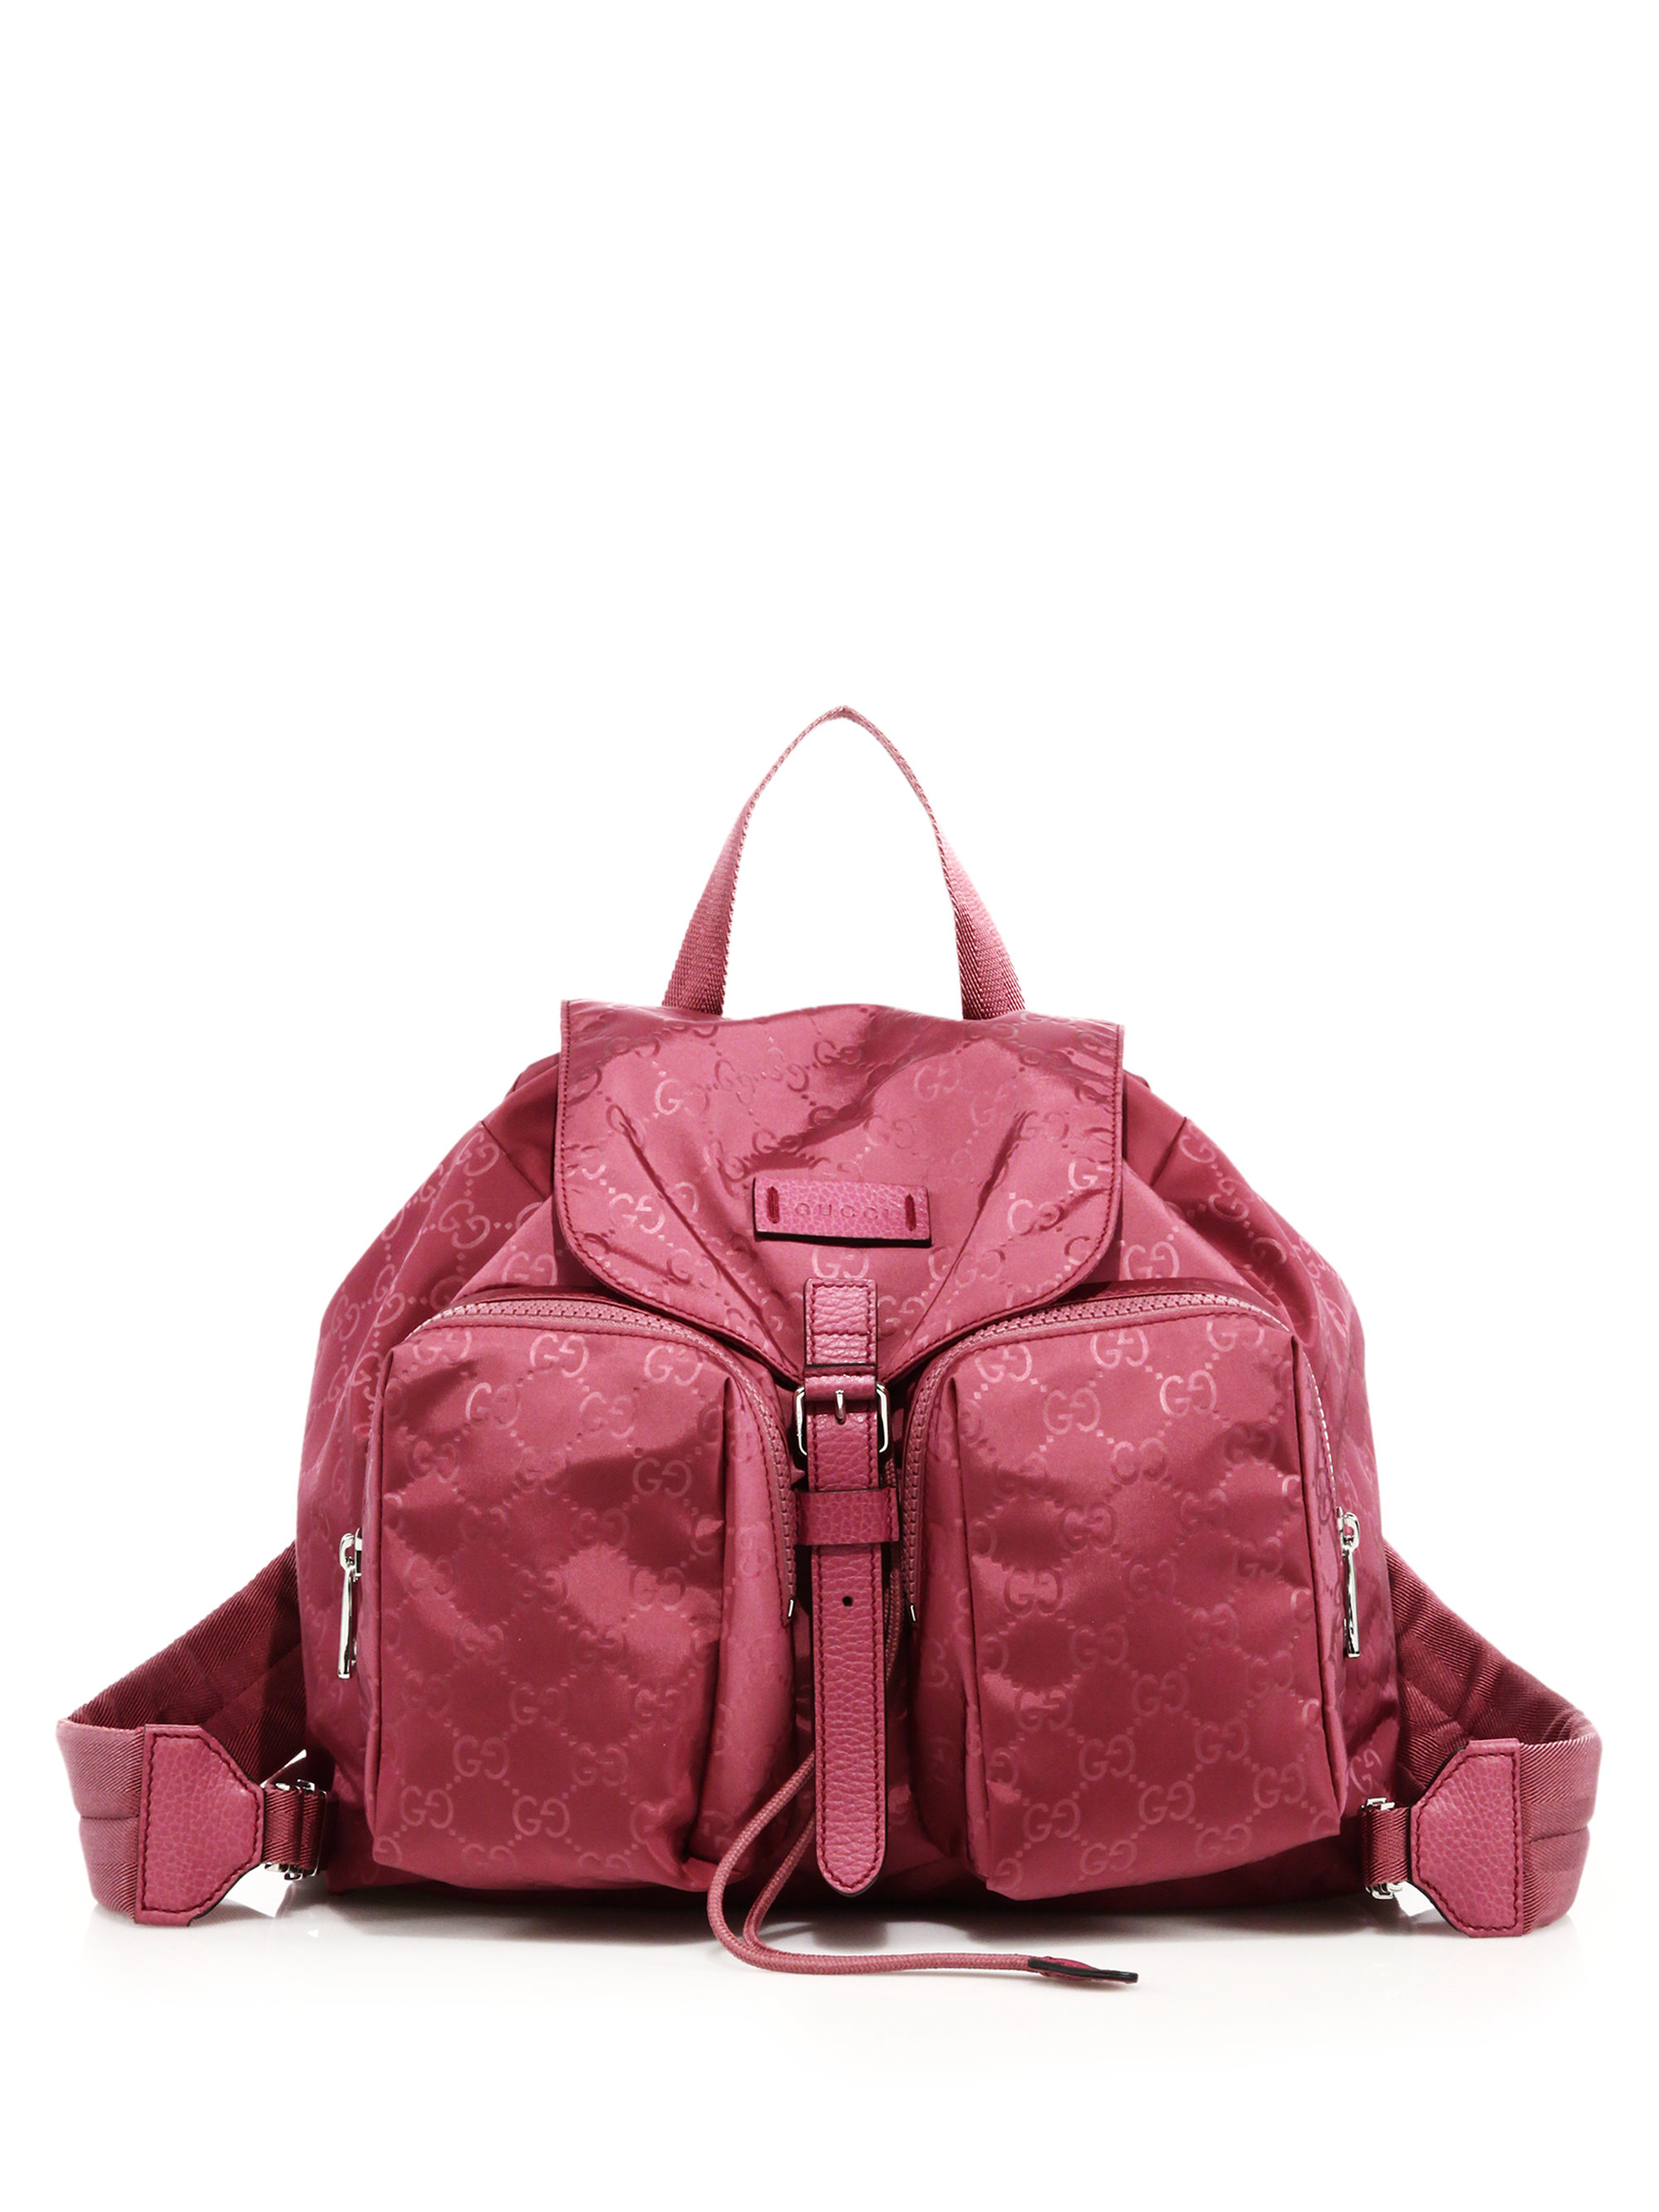 Lyst - Gucci Nylon Ssima Light Backpack in Pink aee52d67784c8